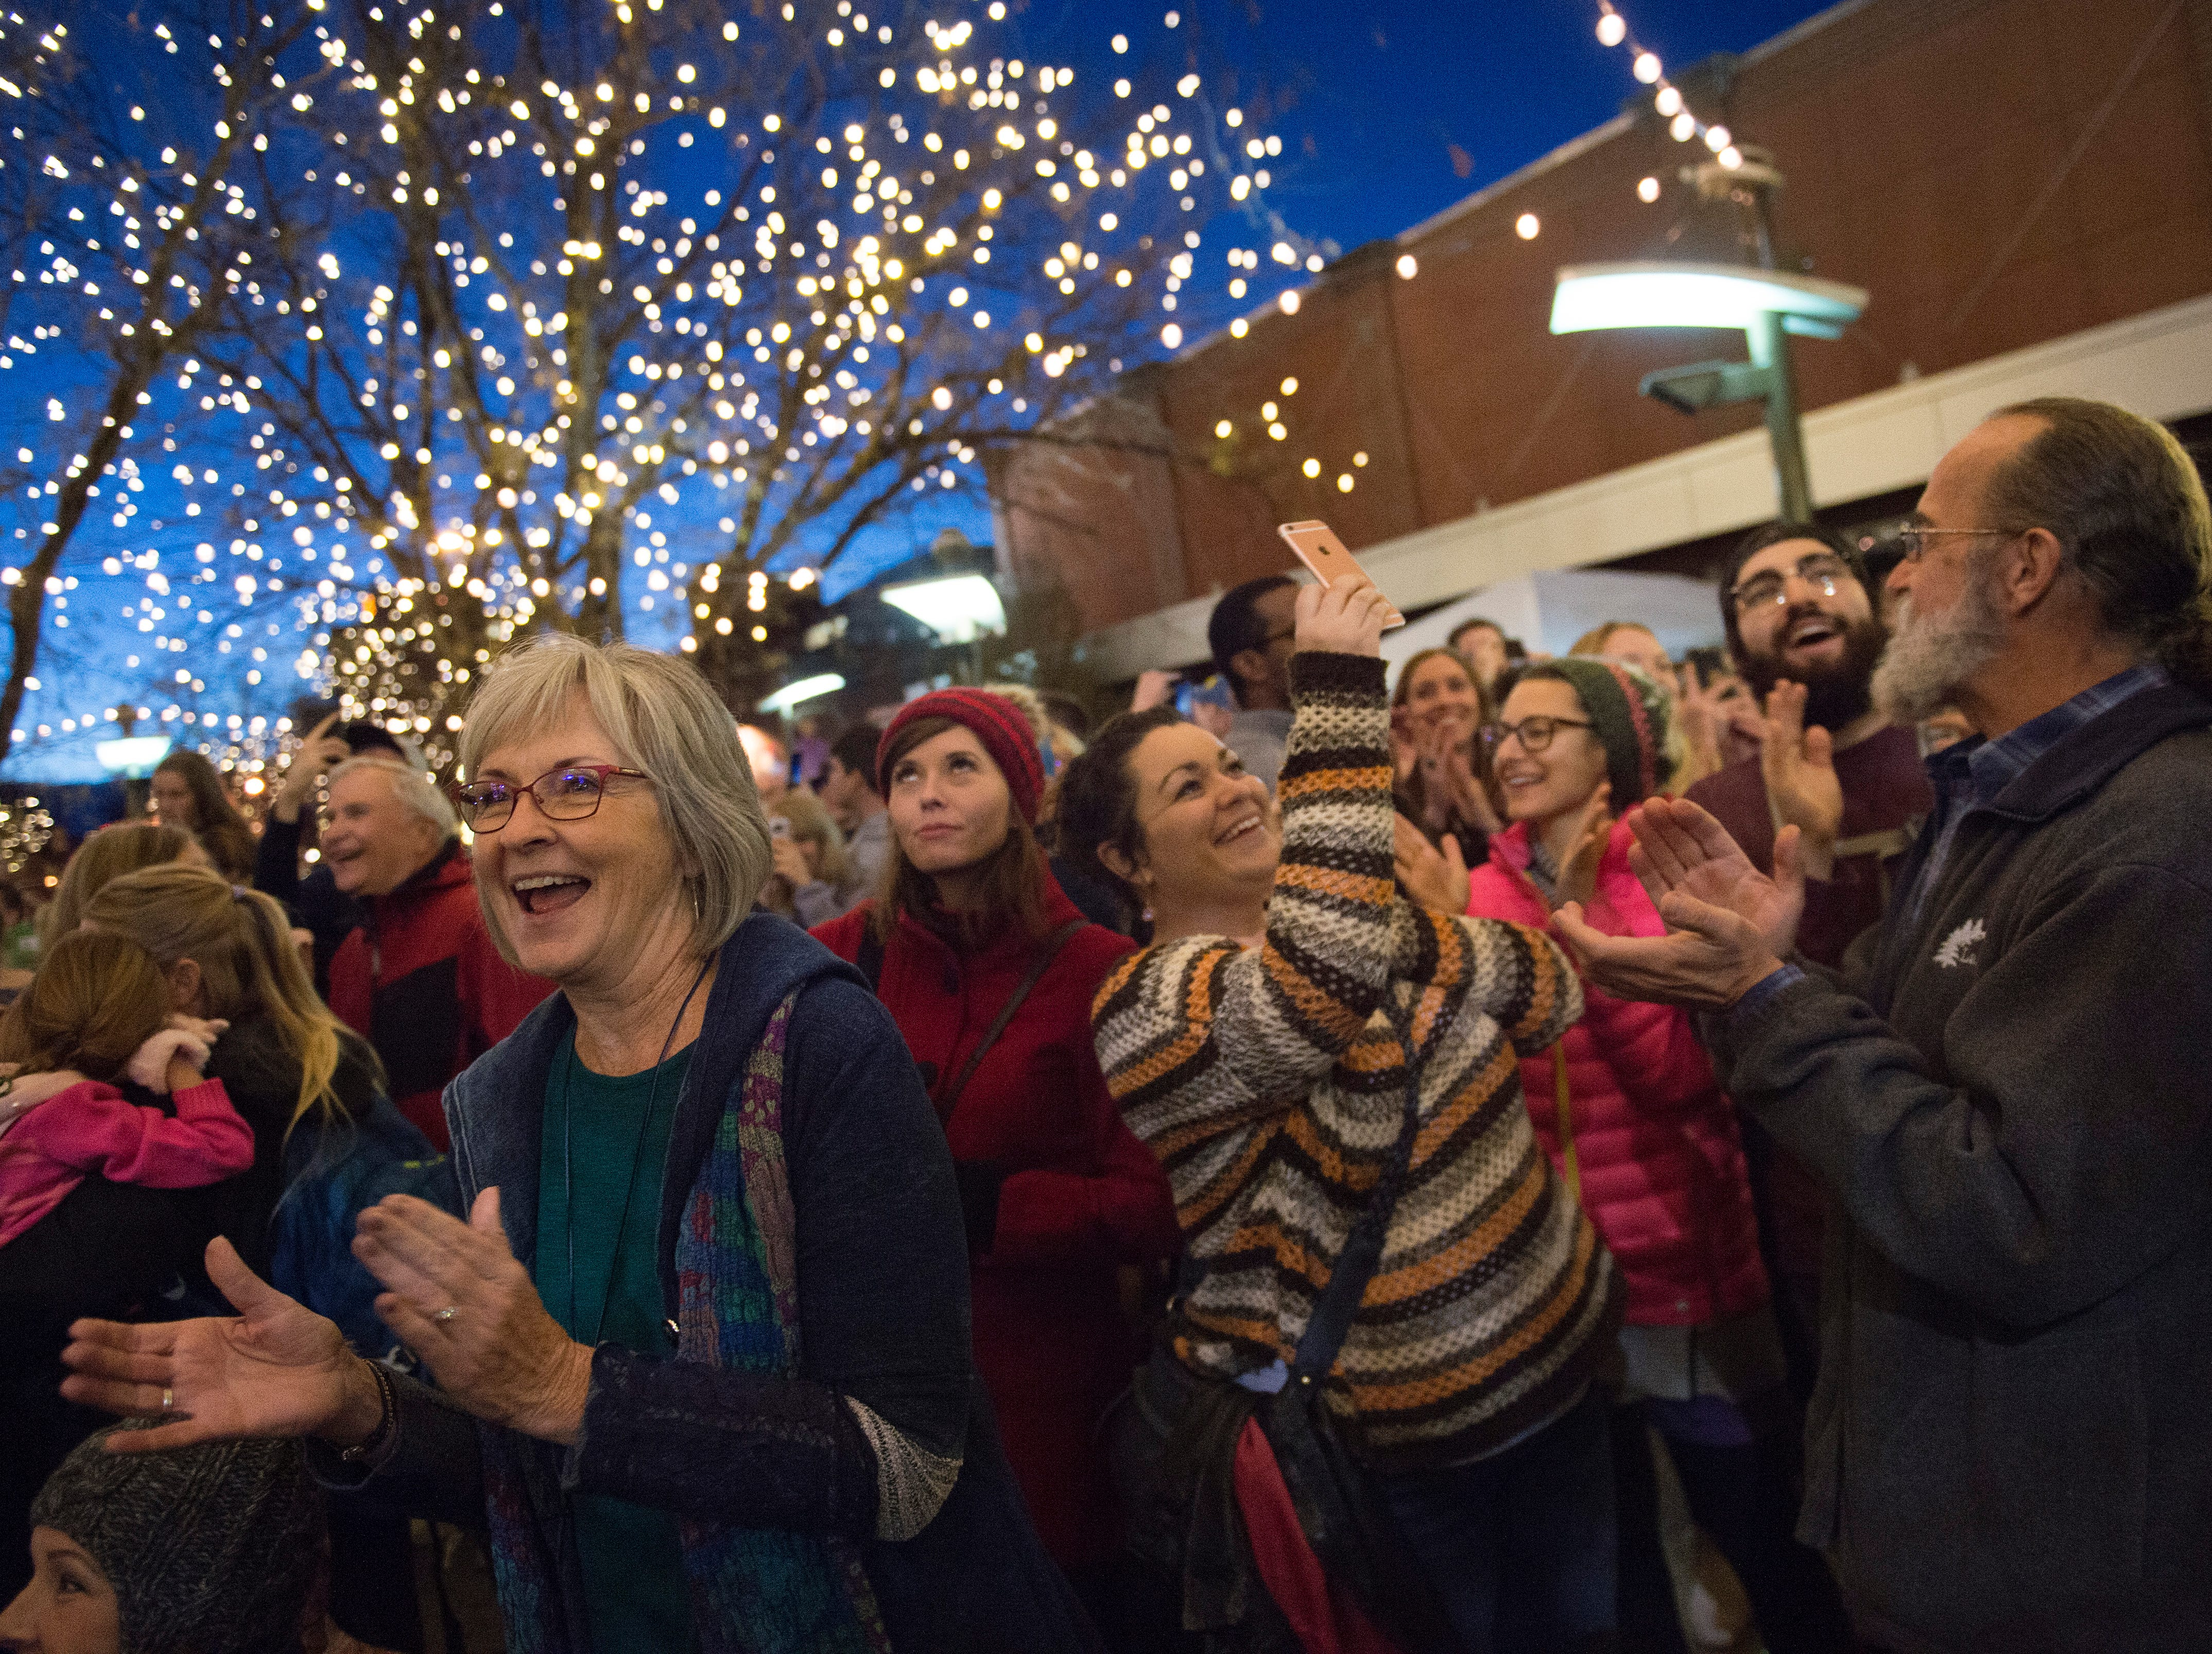 People cheer for the holiday lights after they are turned on in Old Town on Friday, November 2, 2018. The lights will illuminate Old Town until Feb. 14.